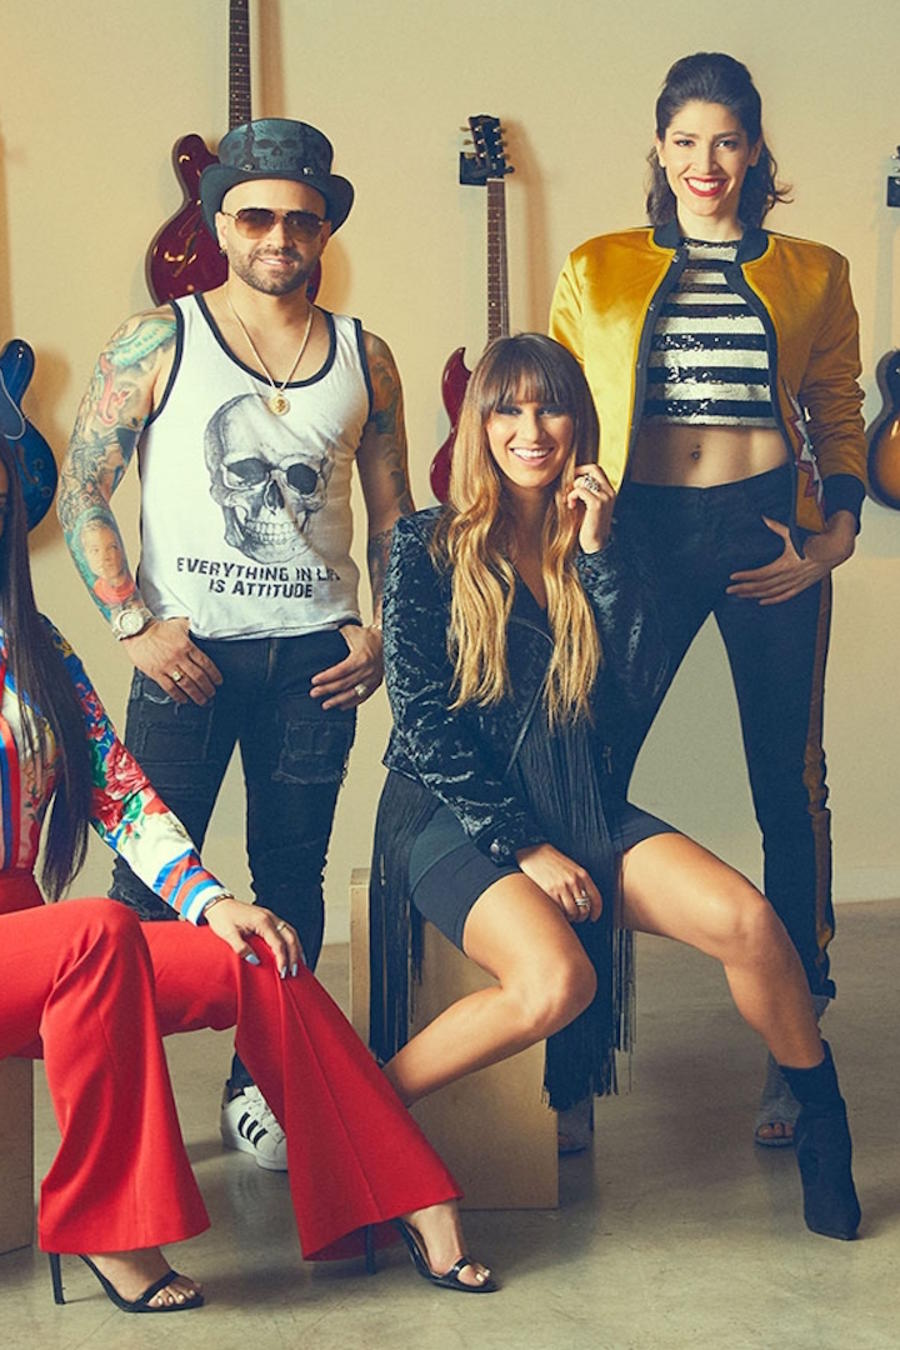 Victoria La Mala, Nacho, Ha*Ash, and CNCO